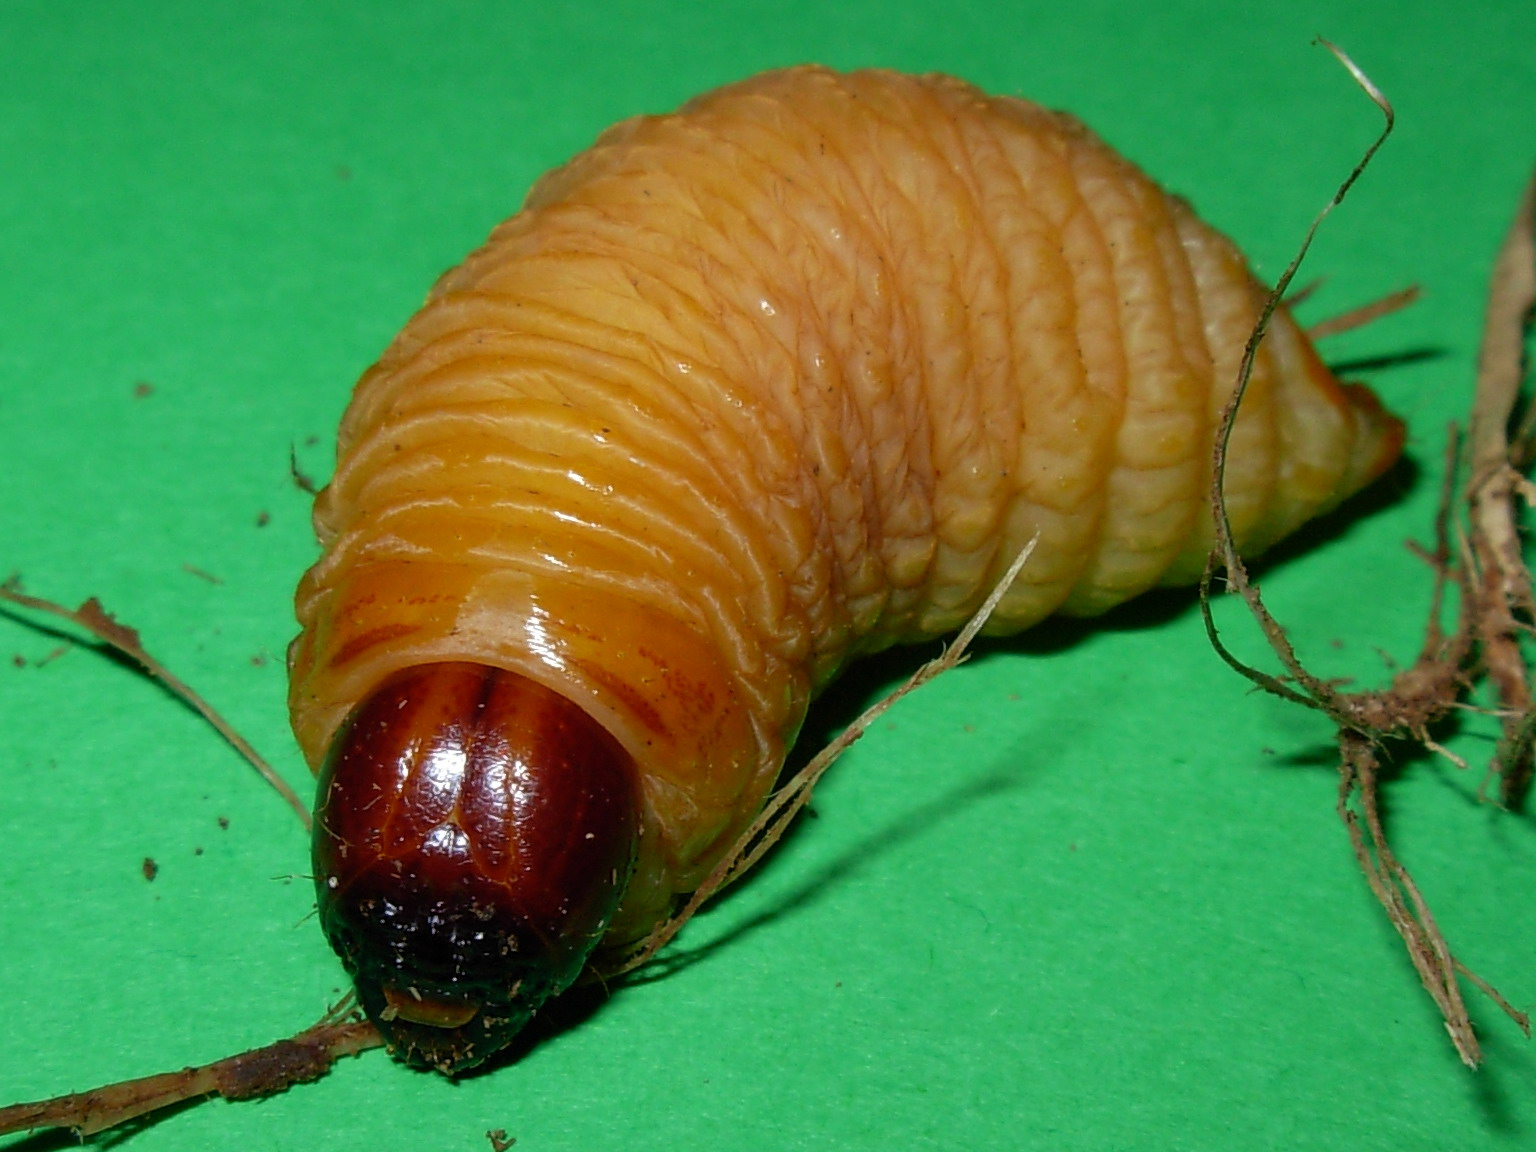 https://upload.wikimedia.org/wikipedia/commons/8/8d/Rhynchophorus_ferrugineus_larva.JPG